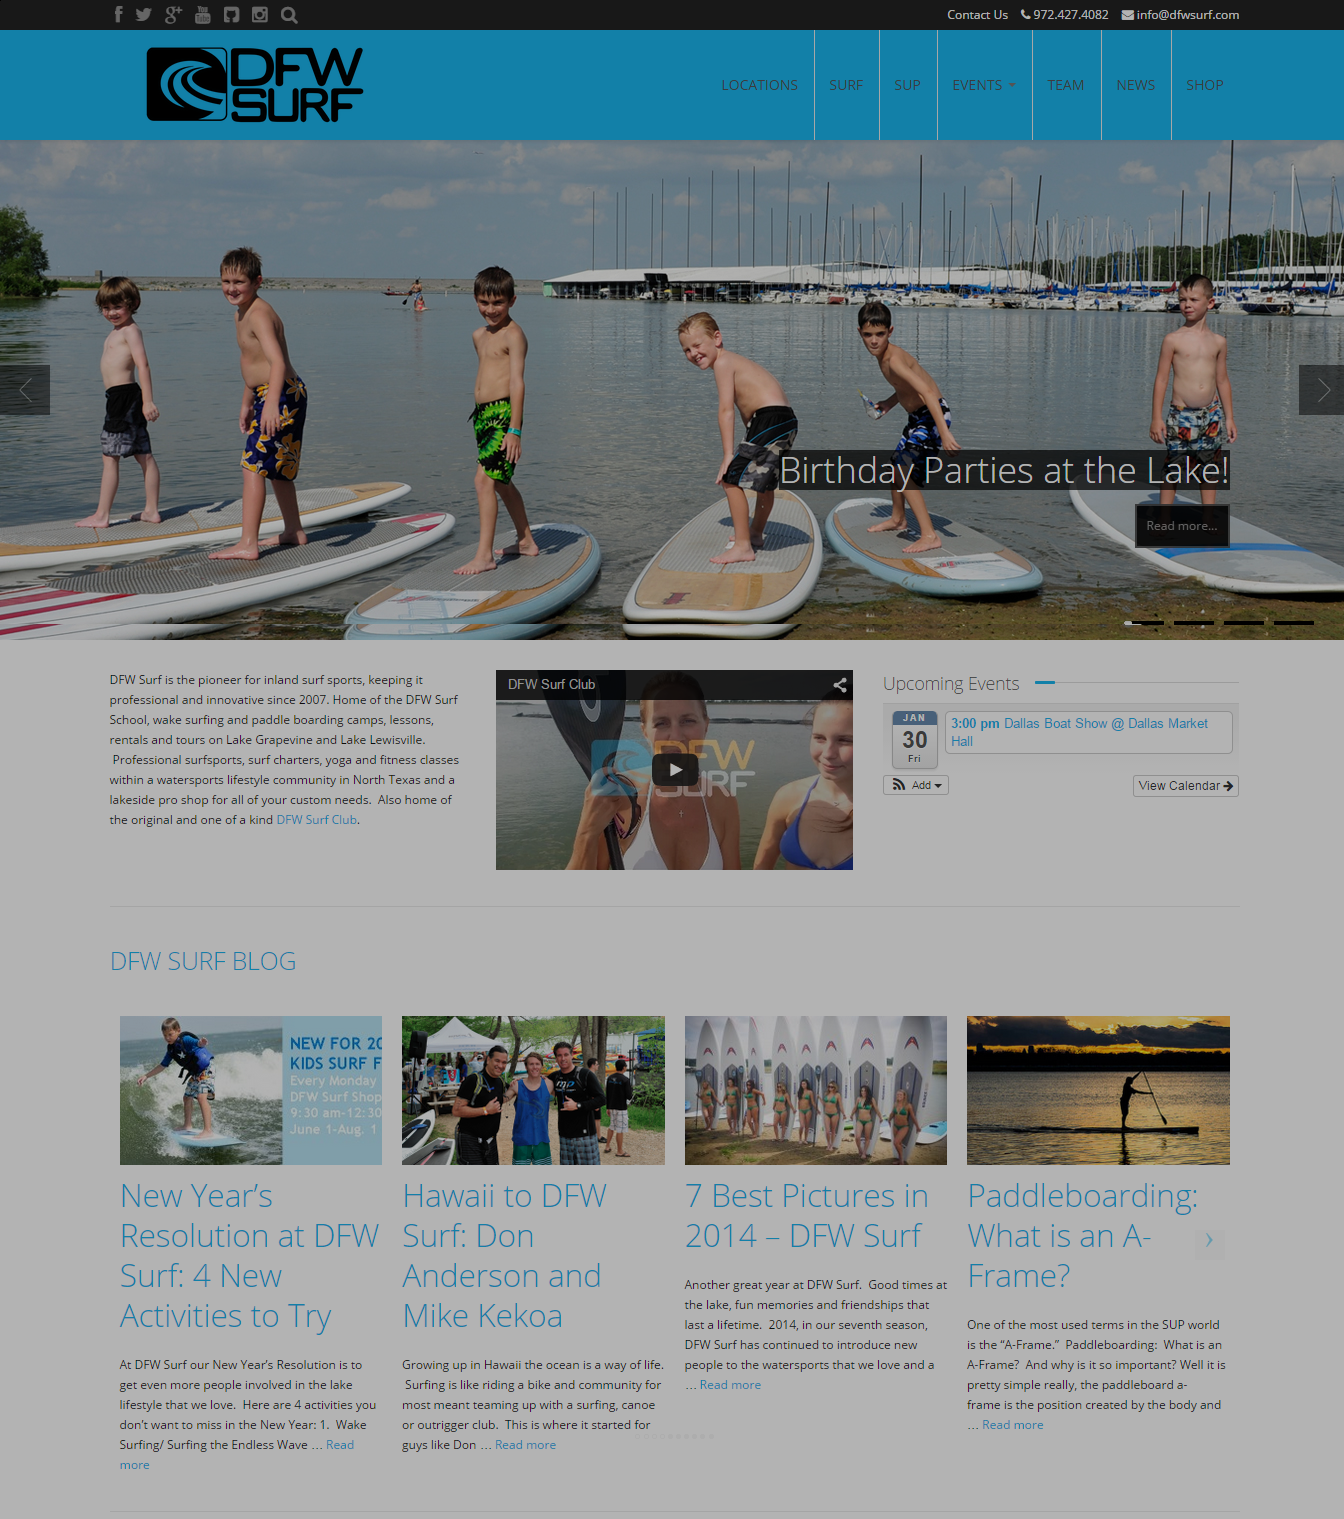 DFW Surf website